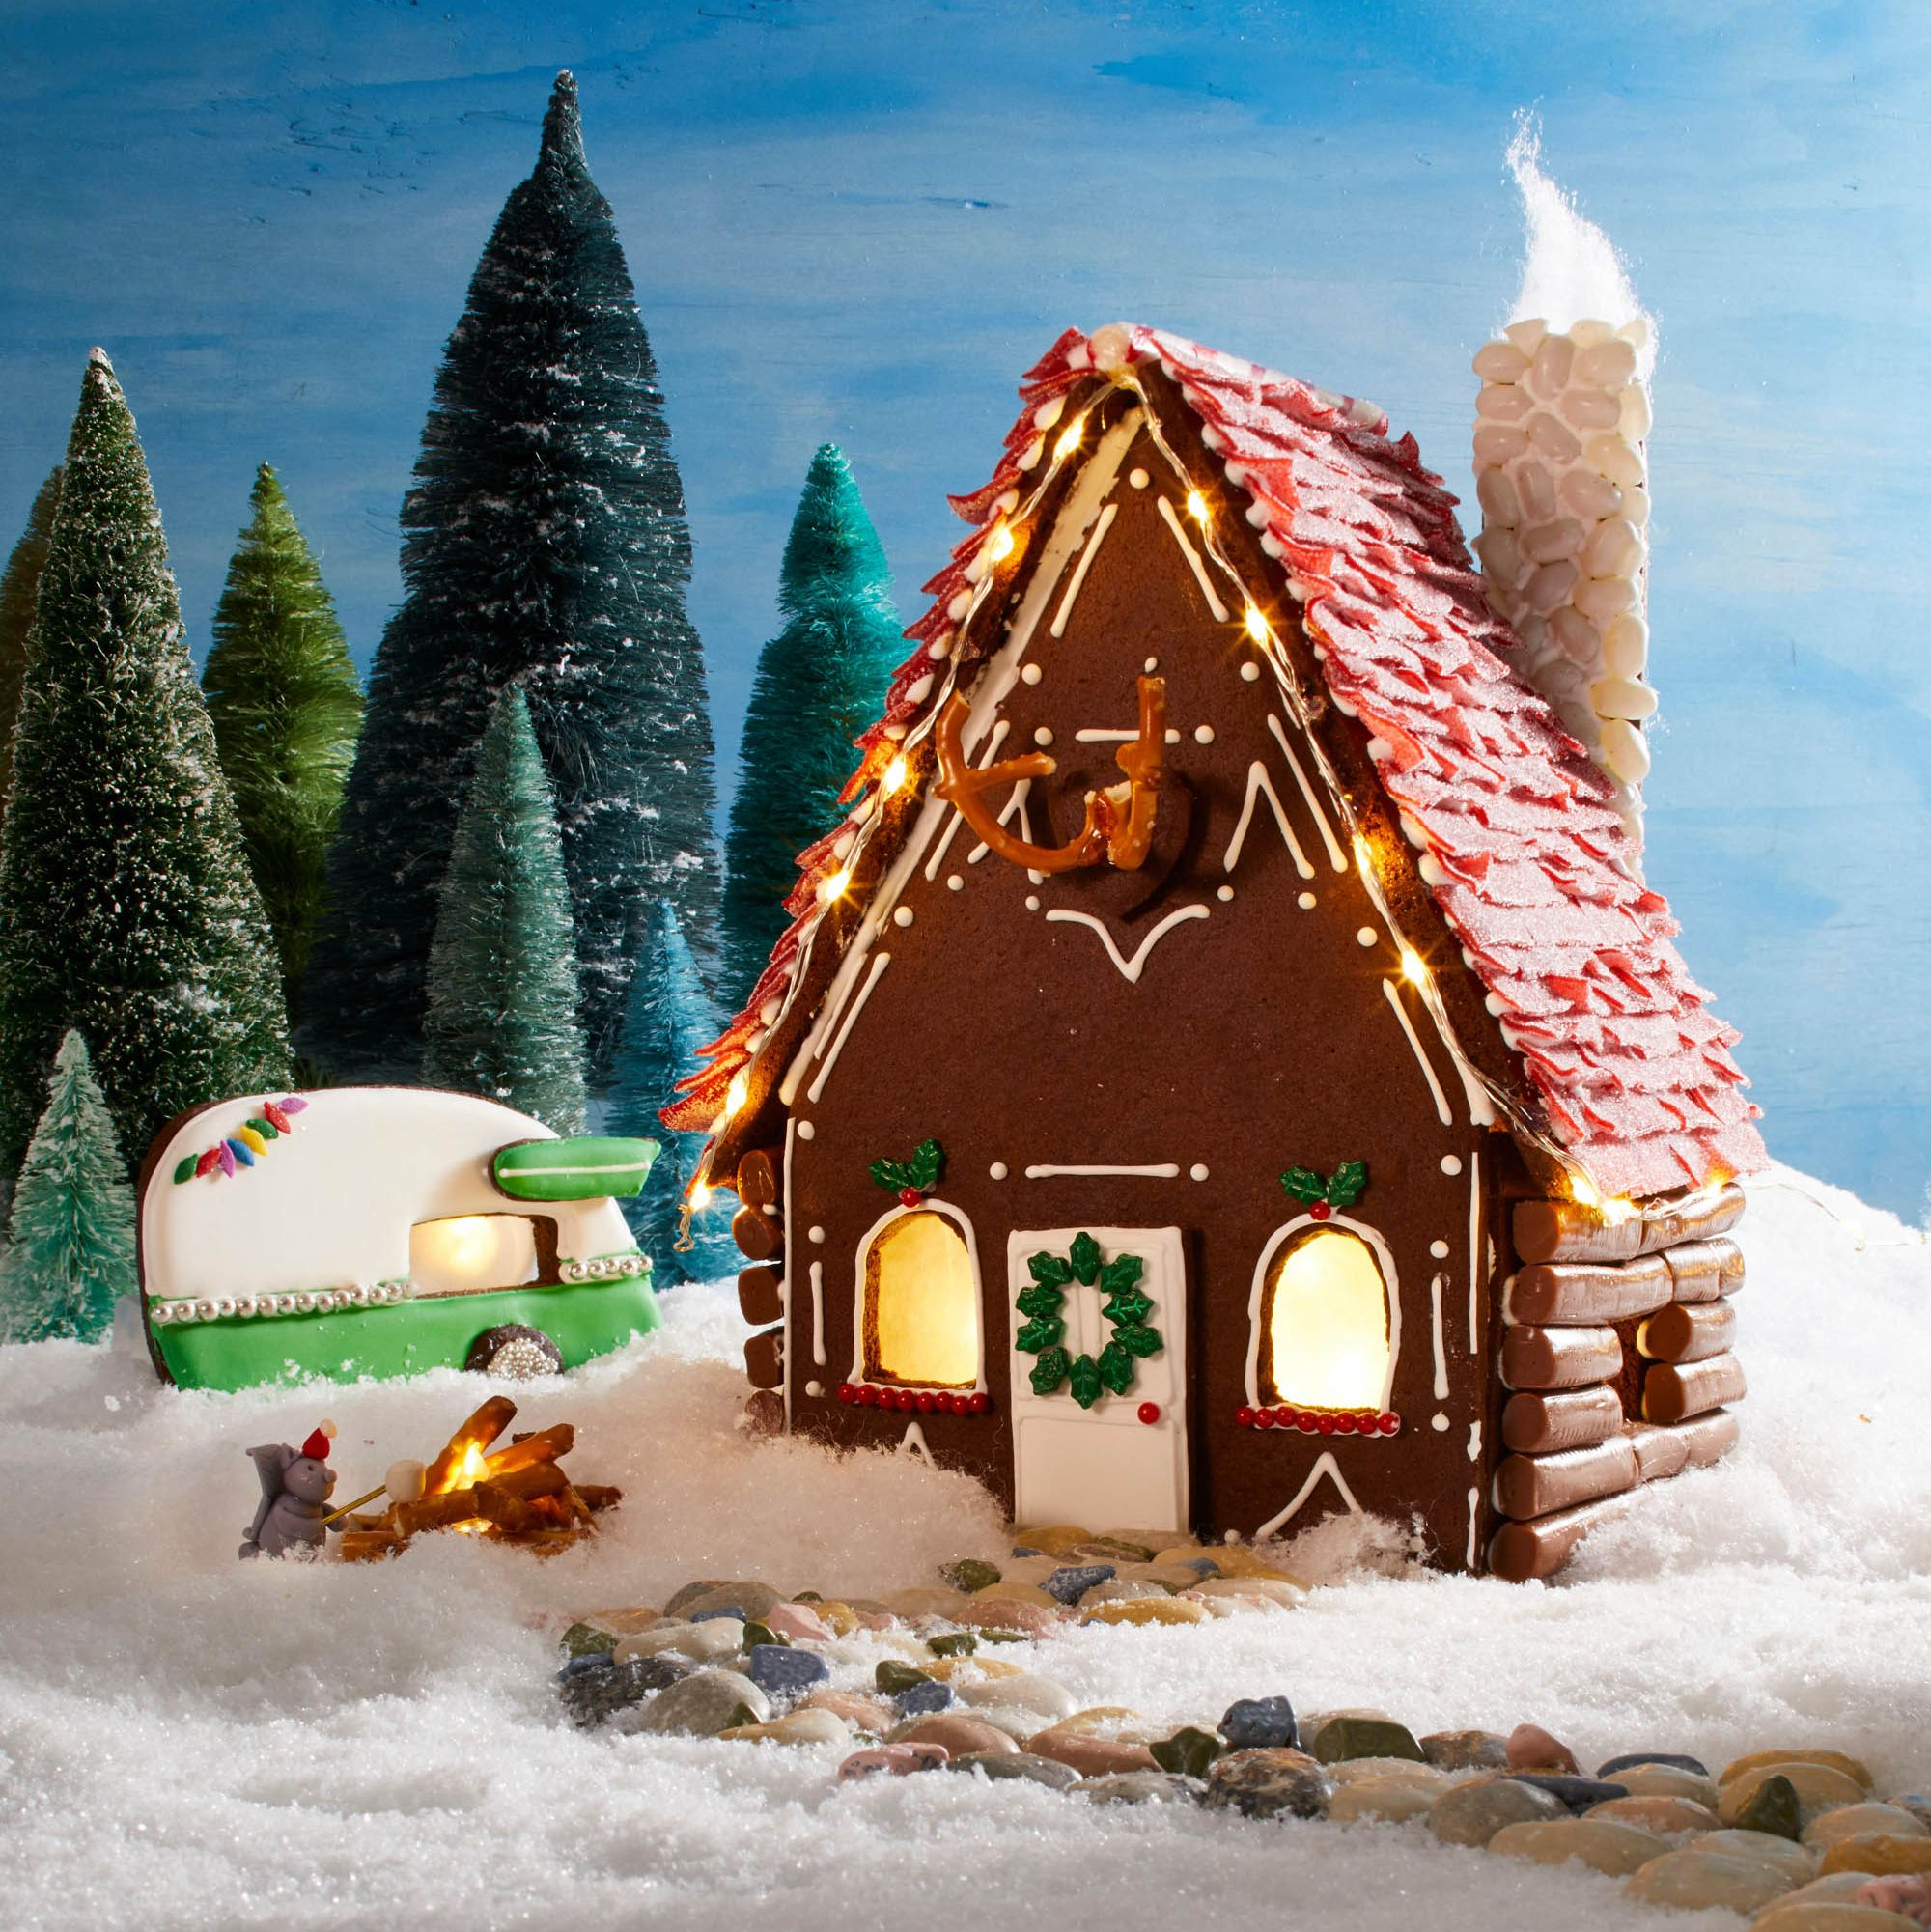 Build the Ultimate Rustic Gingerbread House With These Easy-to-Follow Stencils